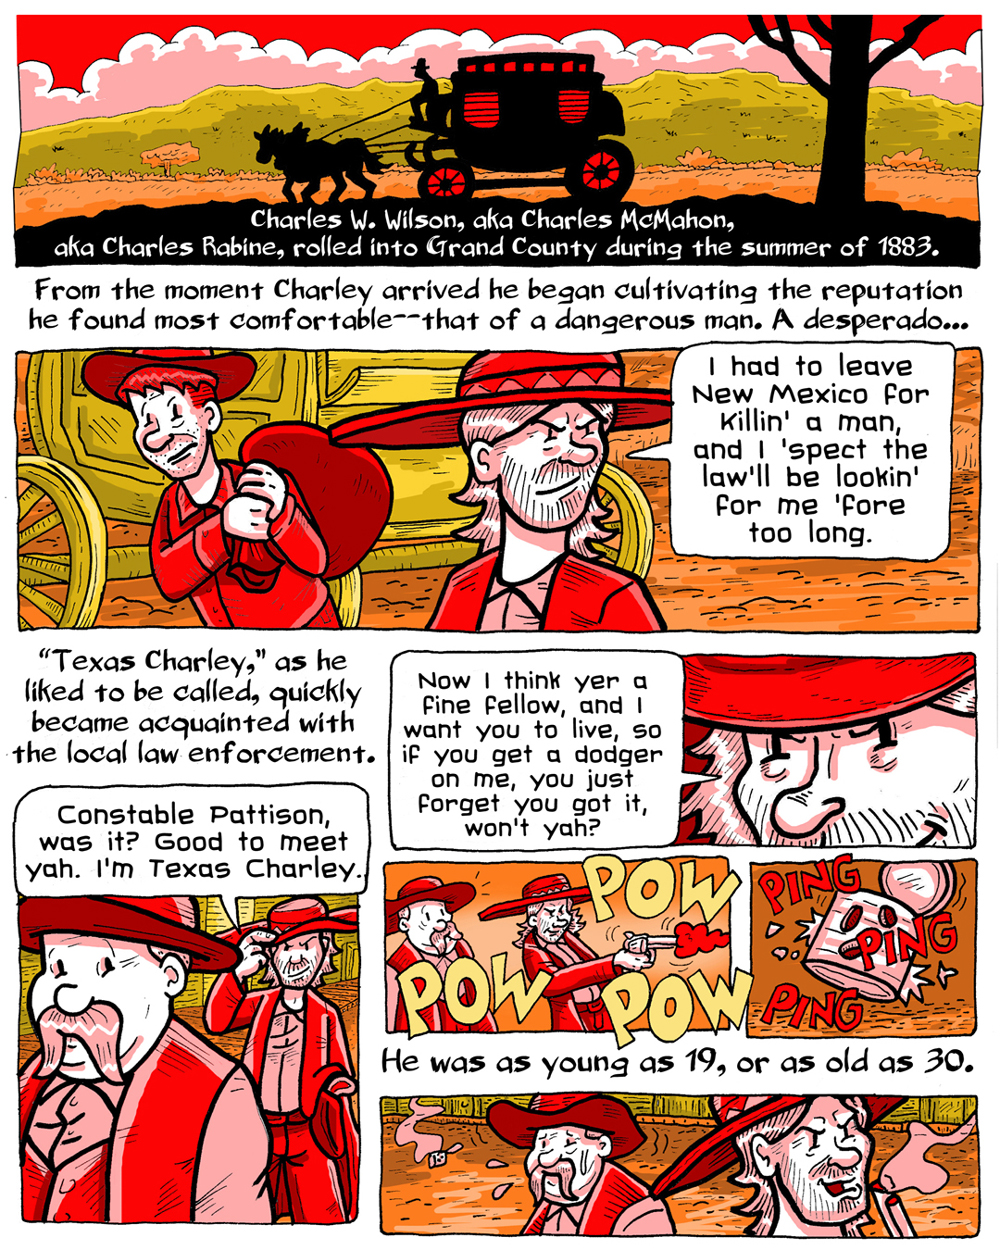 Life is Grand: Texas Charley pg.1, by Mister V (click to enlarge)